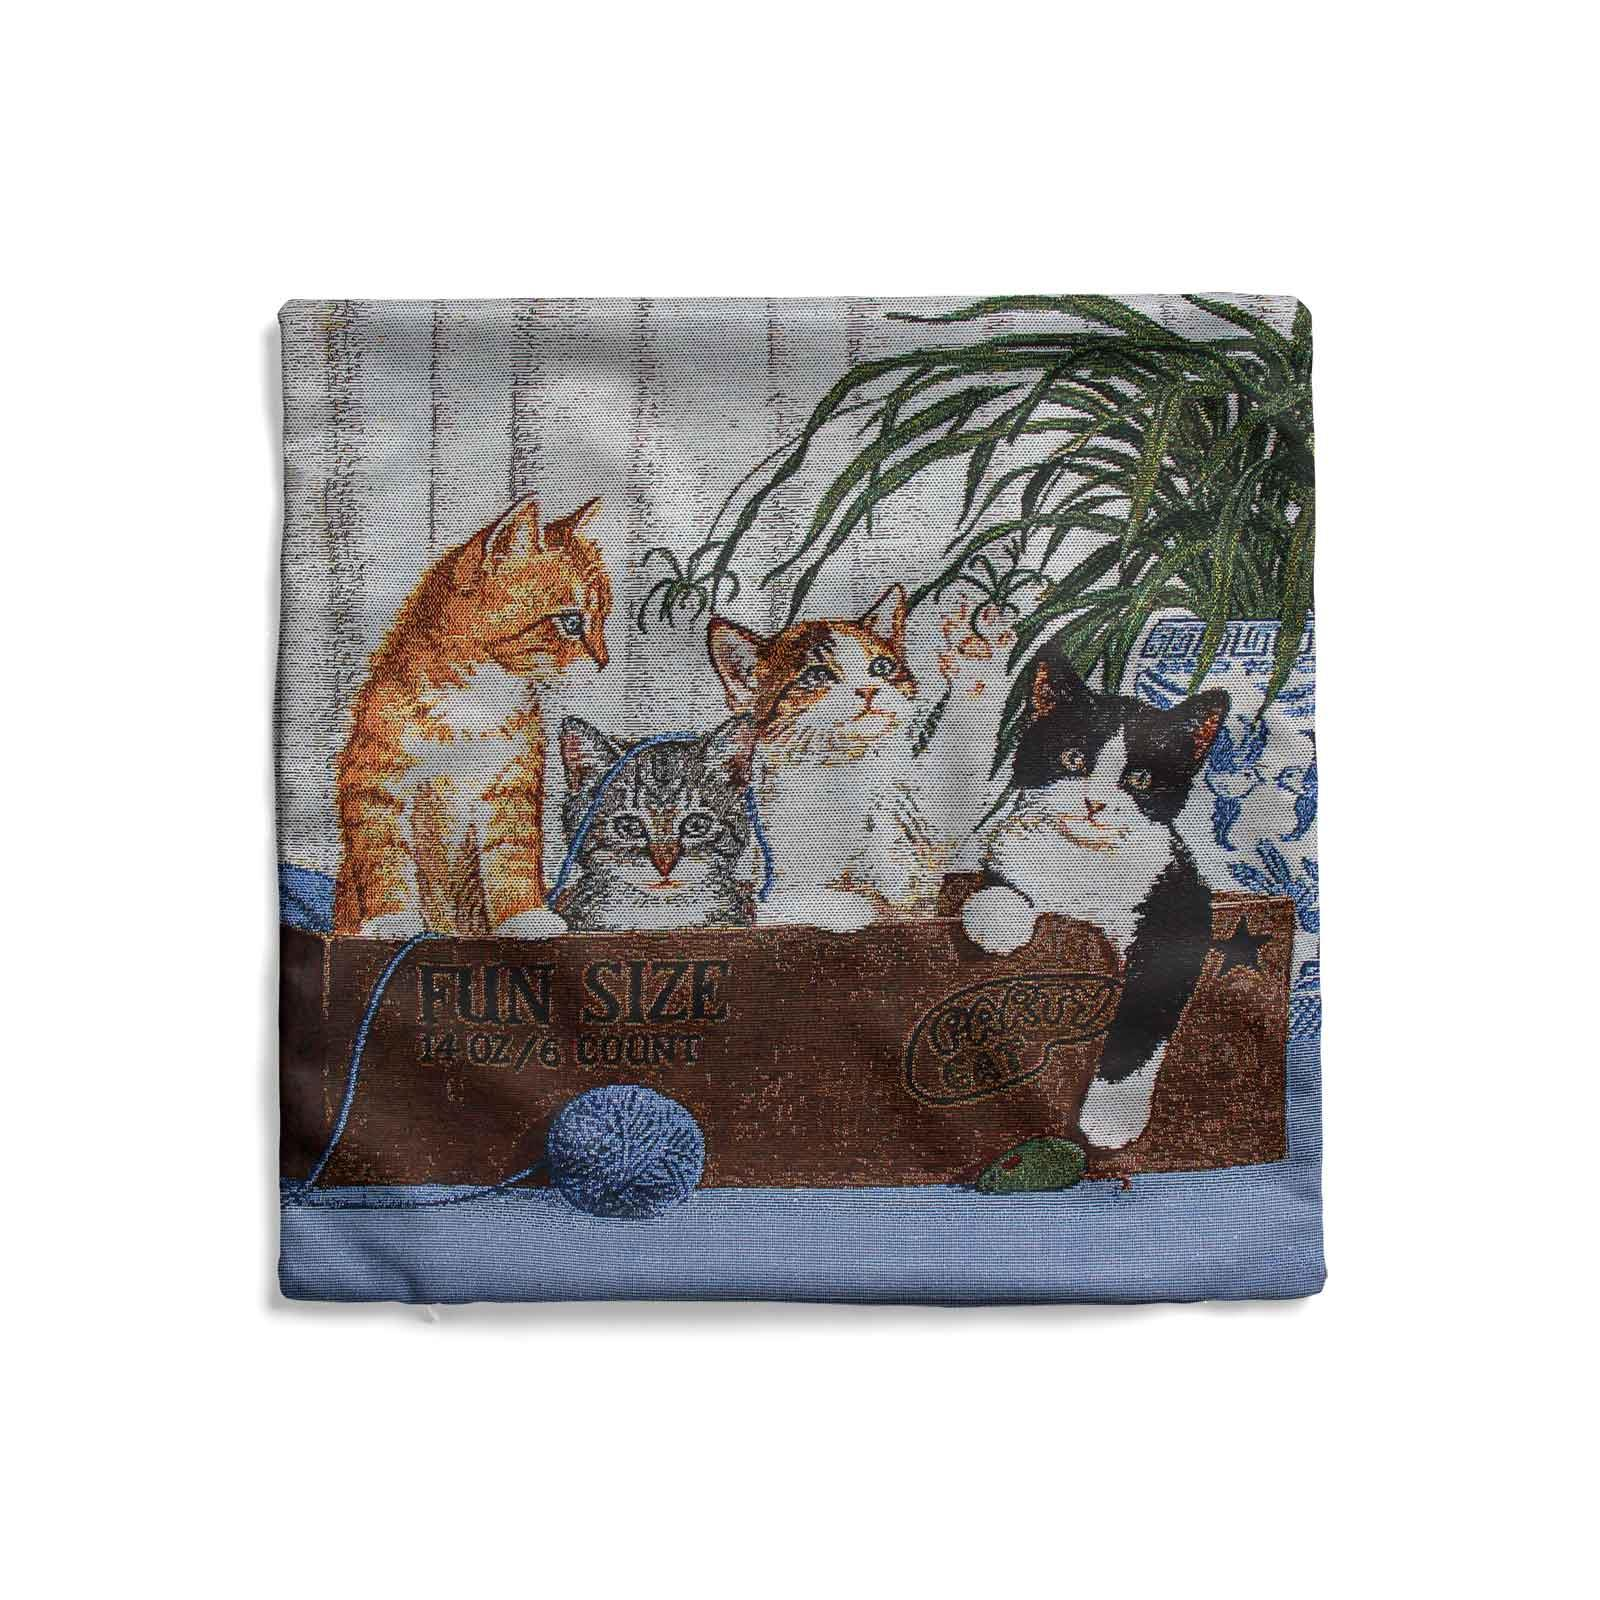 Tapestry-Cushion-Covers-Vintage-Pillow-Cover-Collection-18-034-45cm-Filled-Cushions thumbnail 98